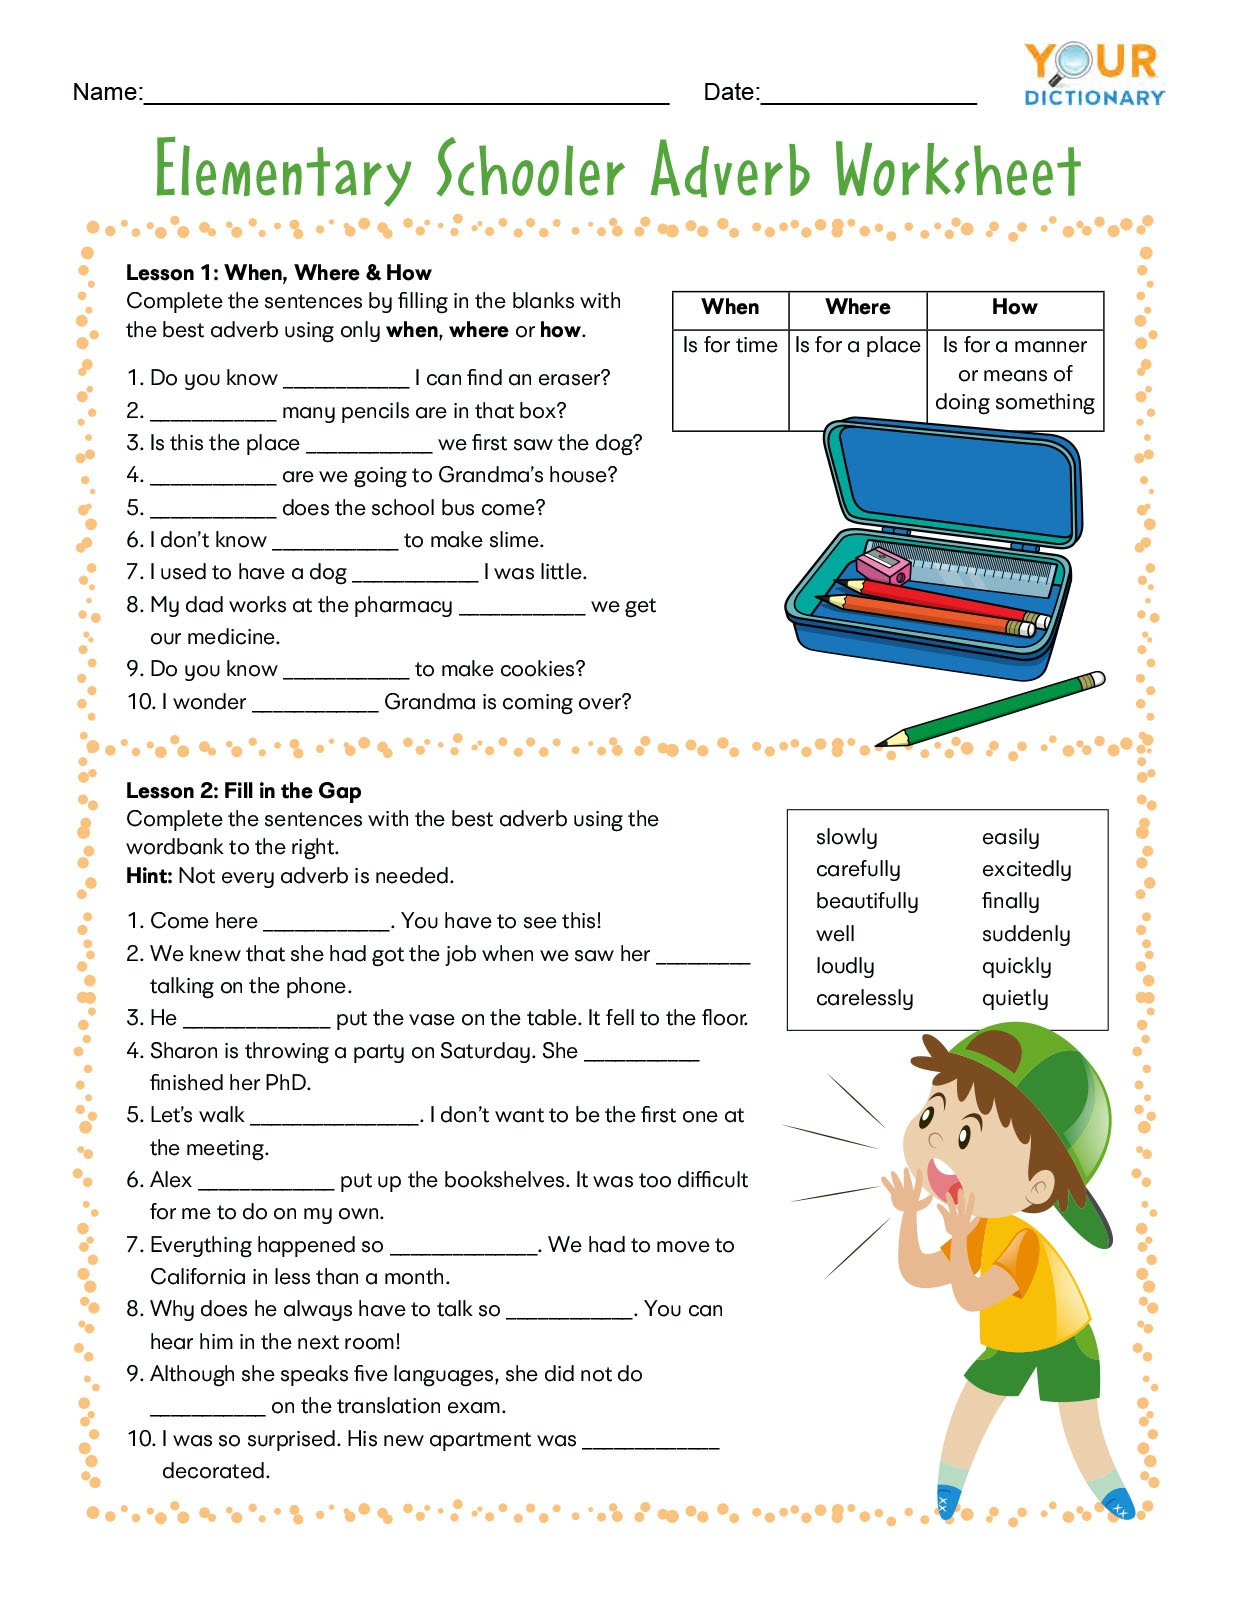 - Adverb Worksheets For Elementary And Middle School